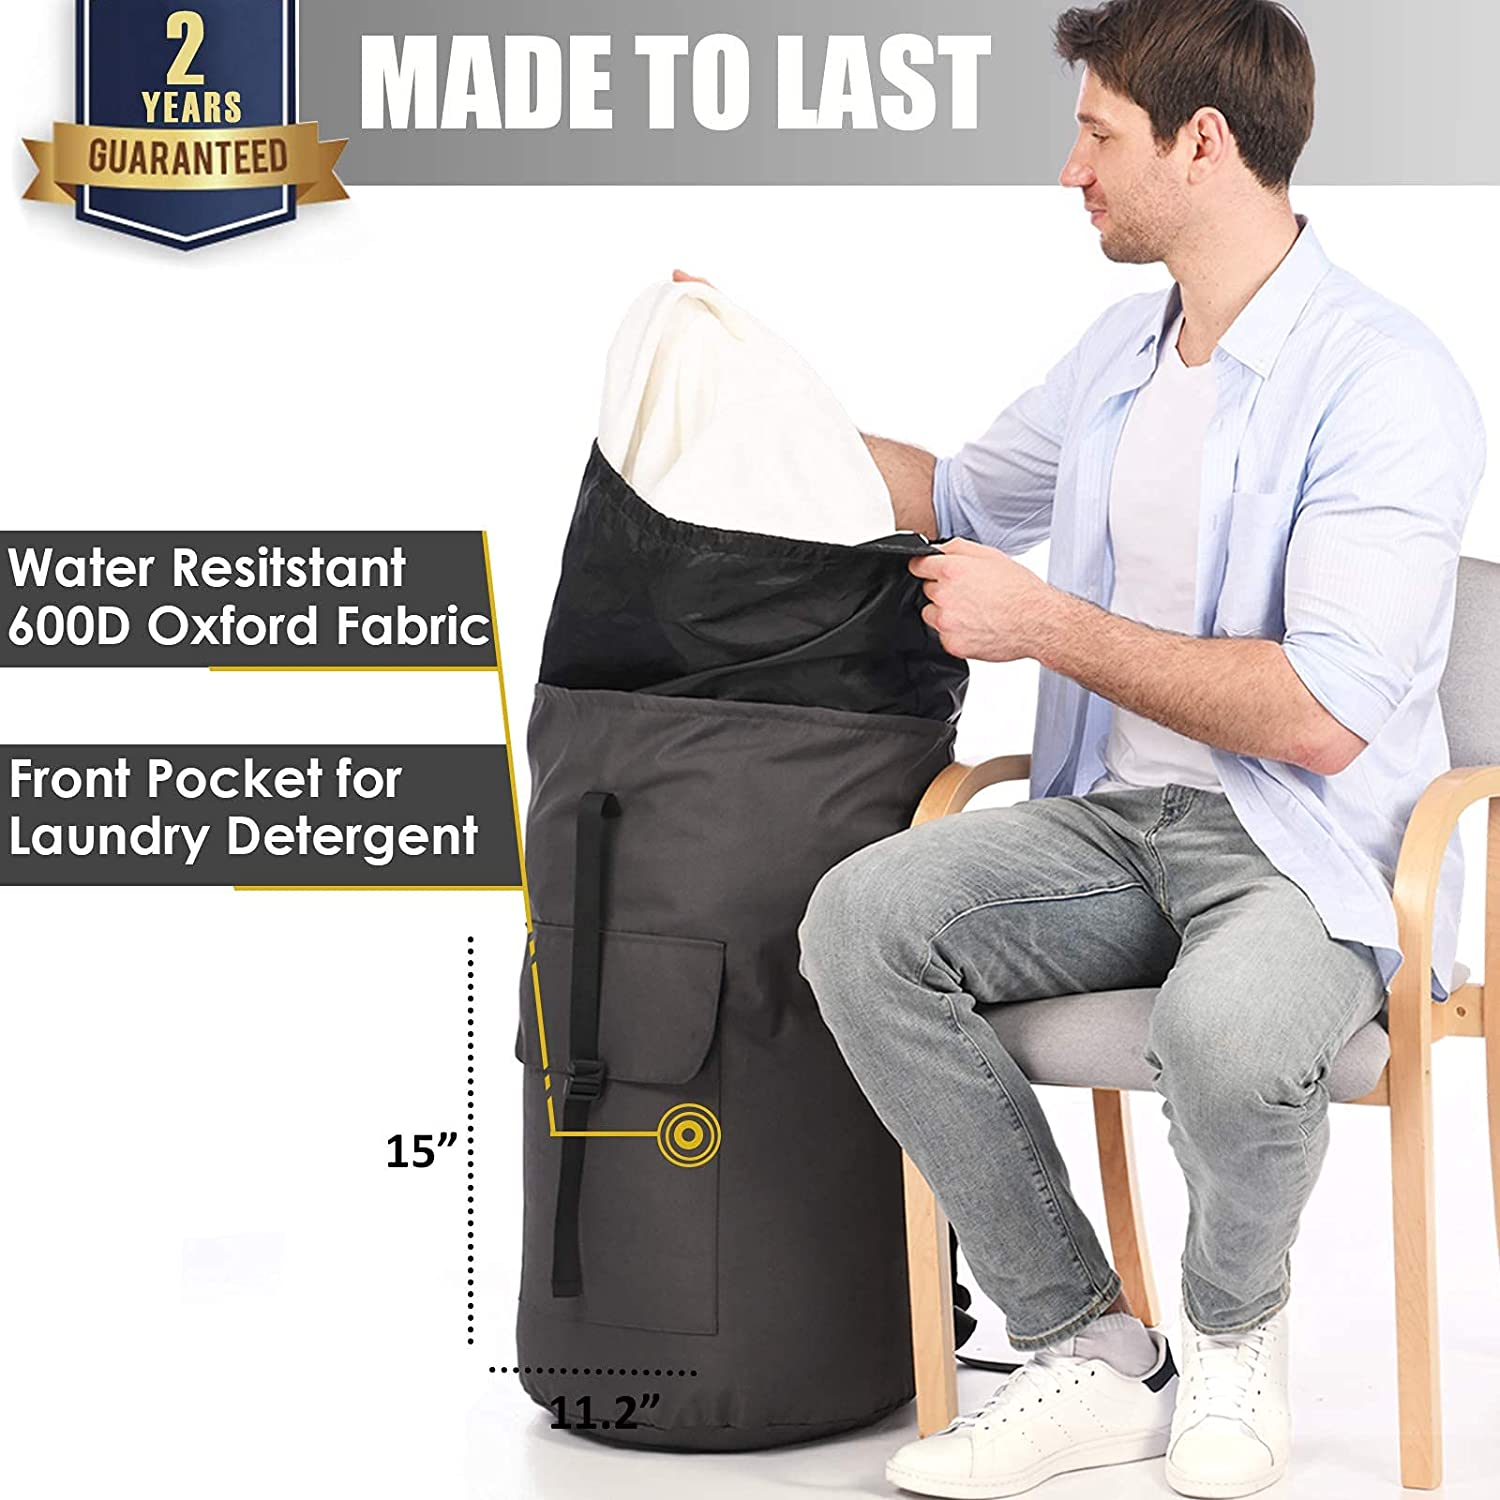 Laundry Extra large laundry backpack, charcoal grey bag with straps